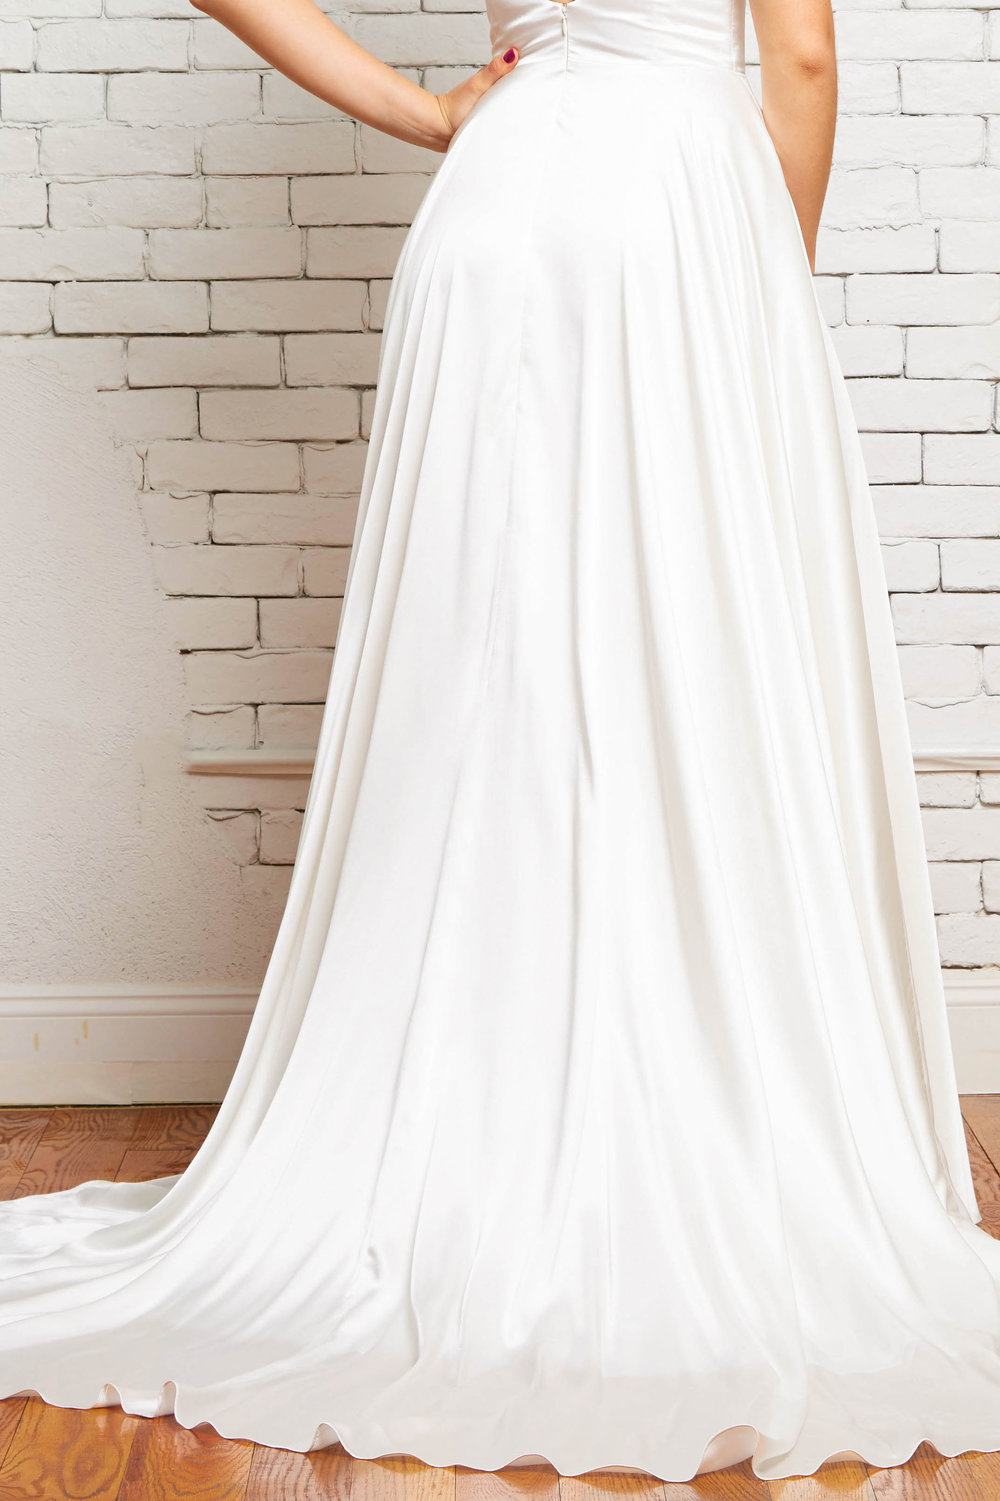 7D Maya Back-Rebecca Schoneveld-Satin_Wedding_Gown_Dramatic_Train_Boho.jpg